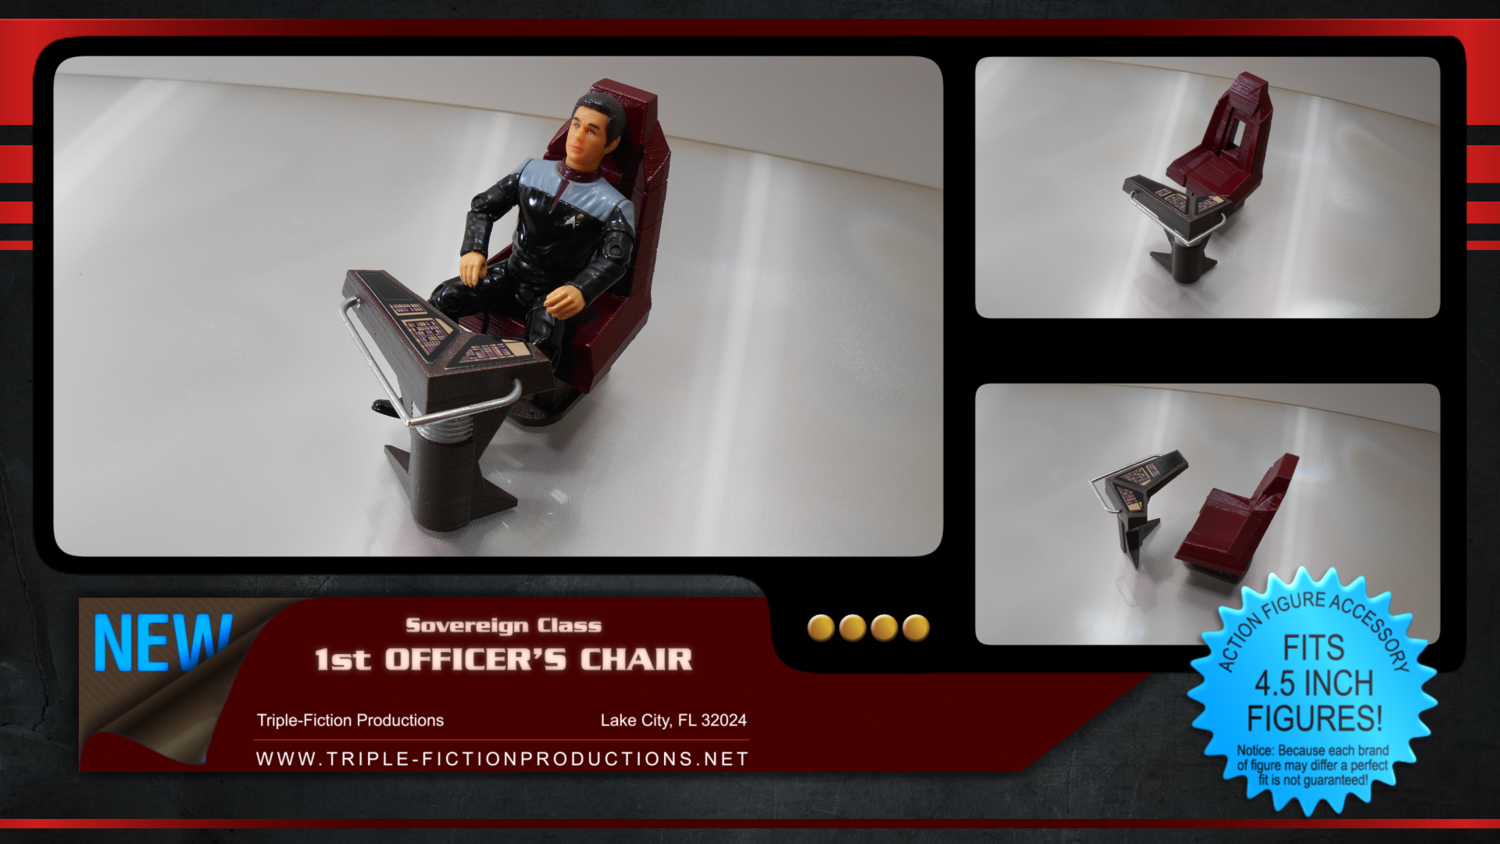 Sovereign Class First Officer's Chair